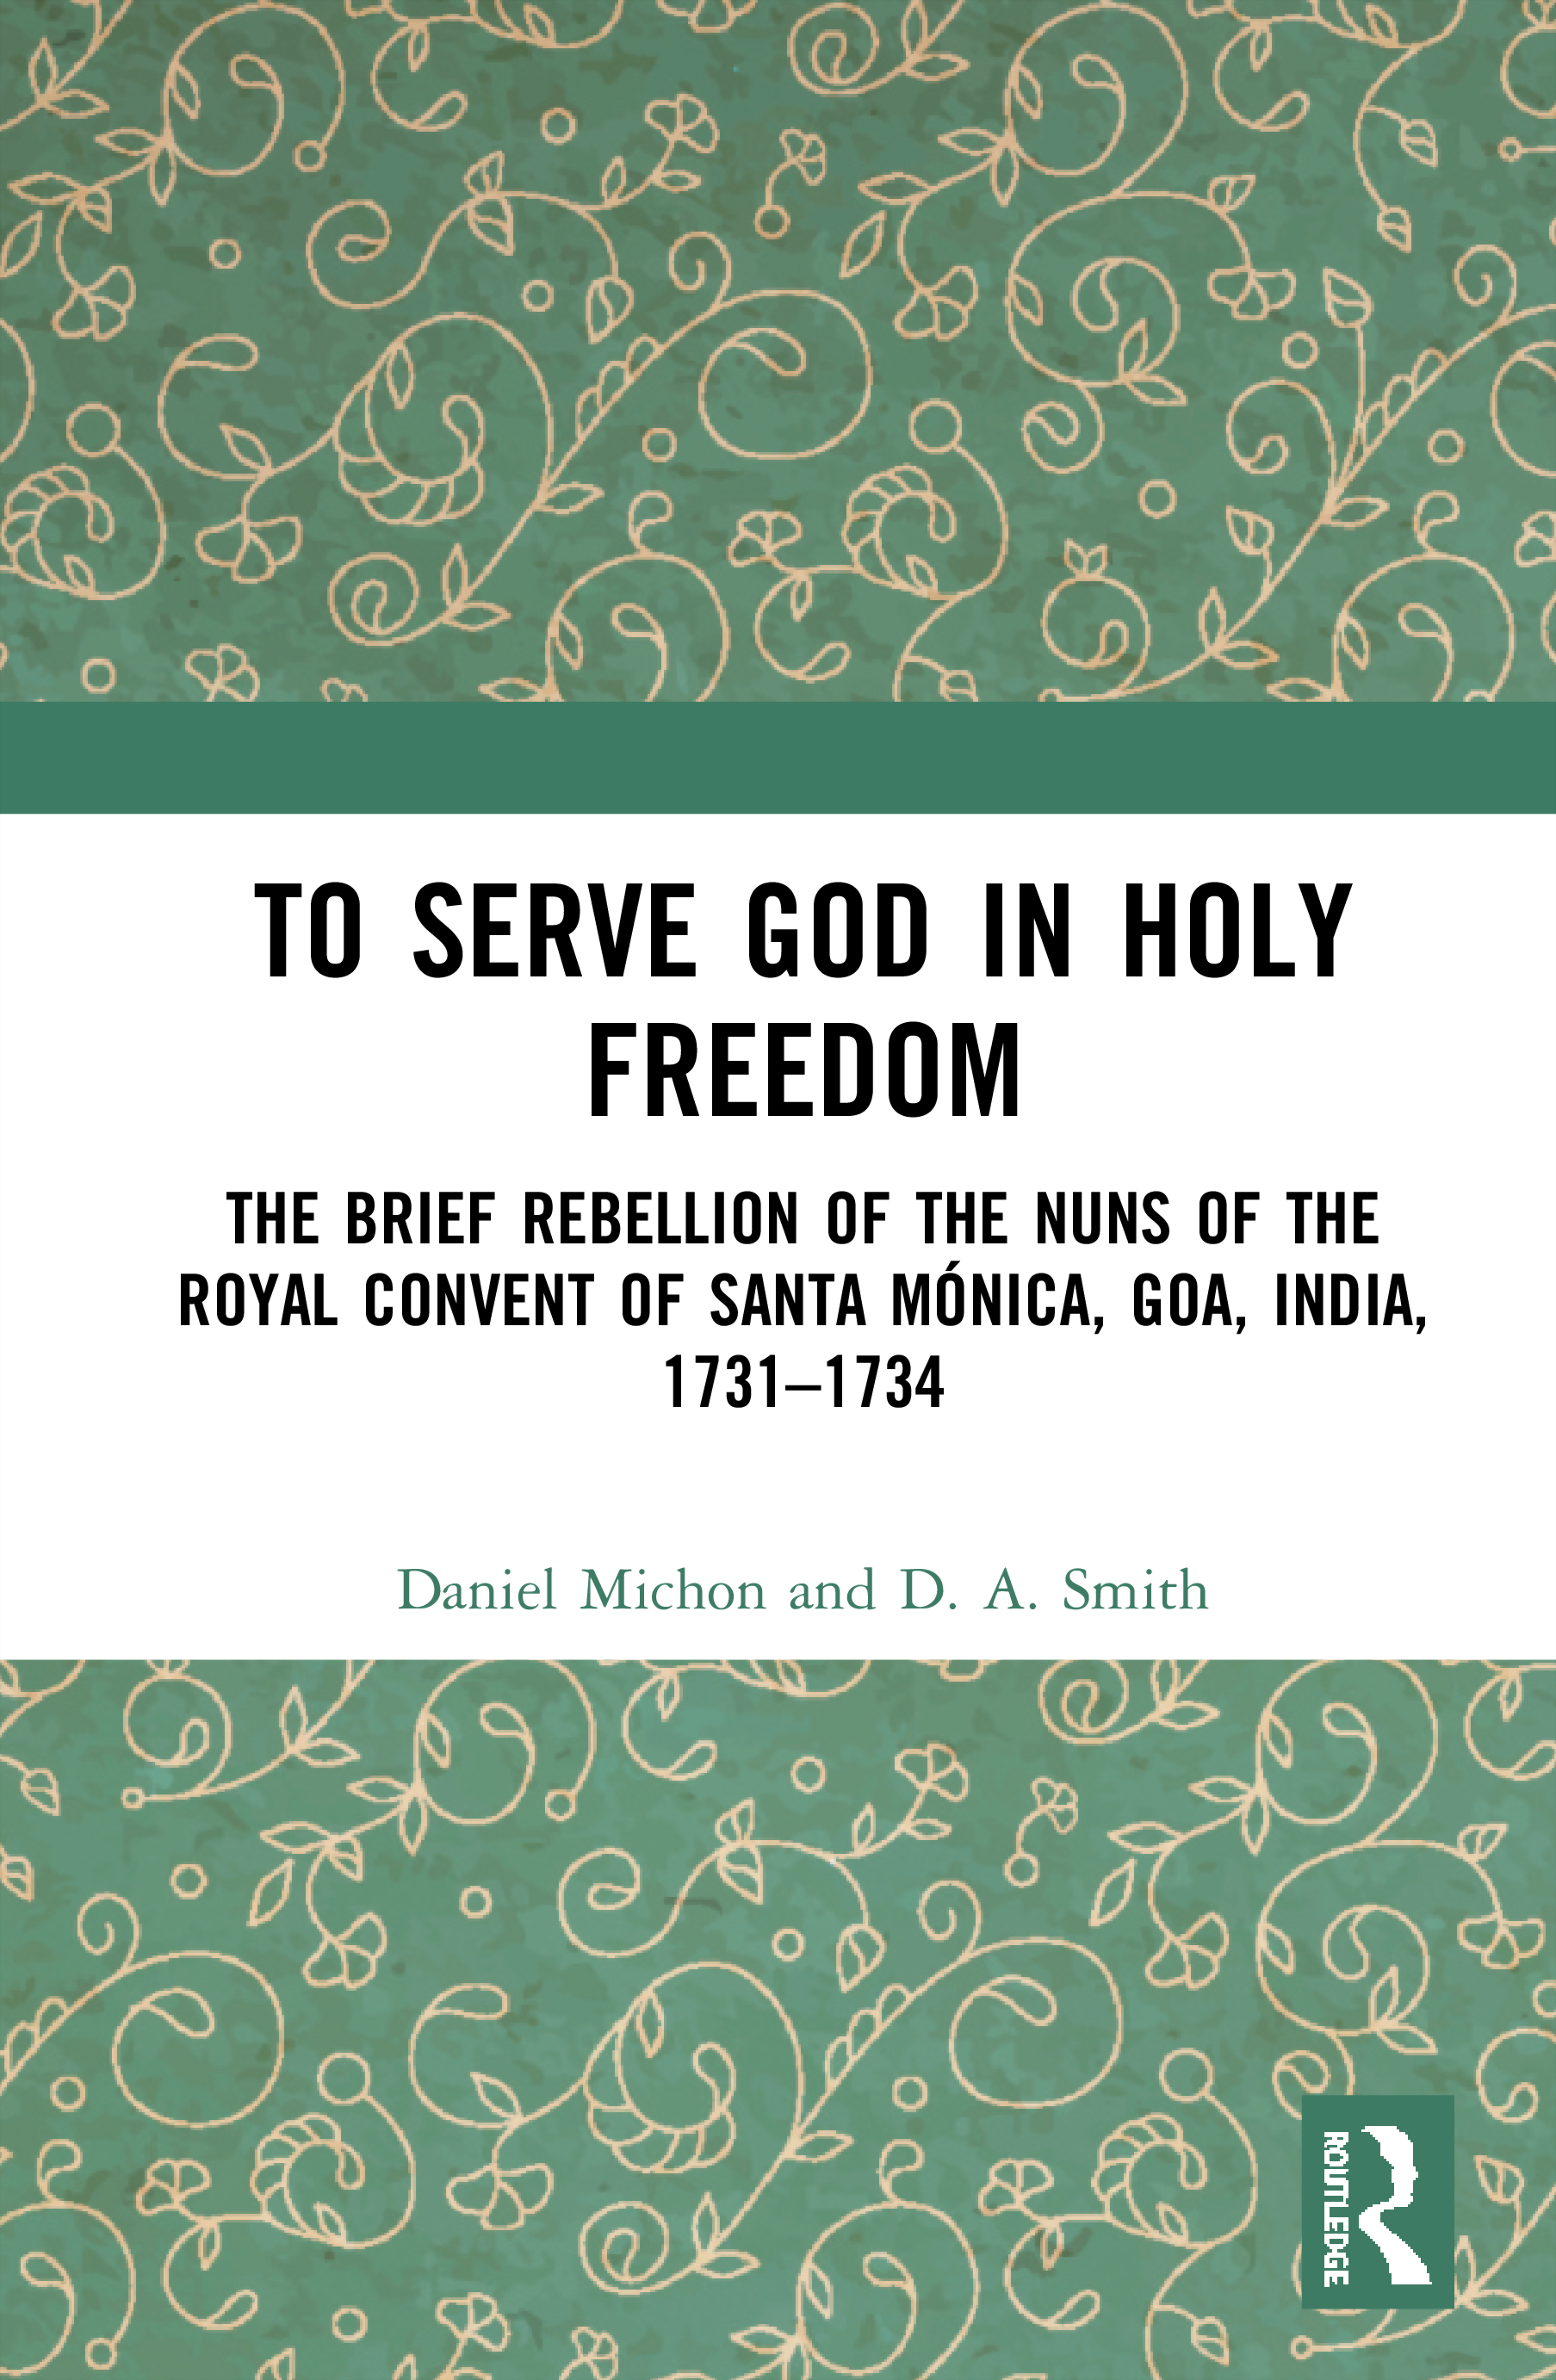 To Serve God in Holy Freedom: The Brief Rebellion of the Nuns of the Royal Convent of Santa Mónica, Goa, India 1731–1734 book cover